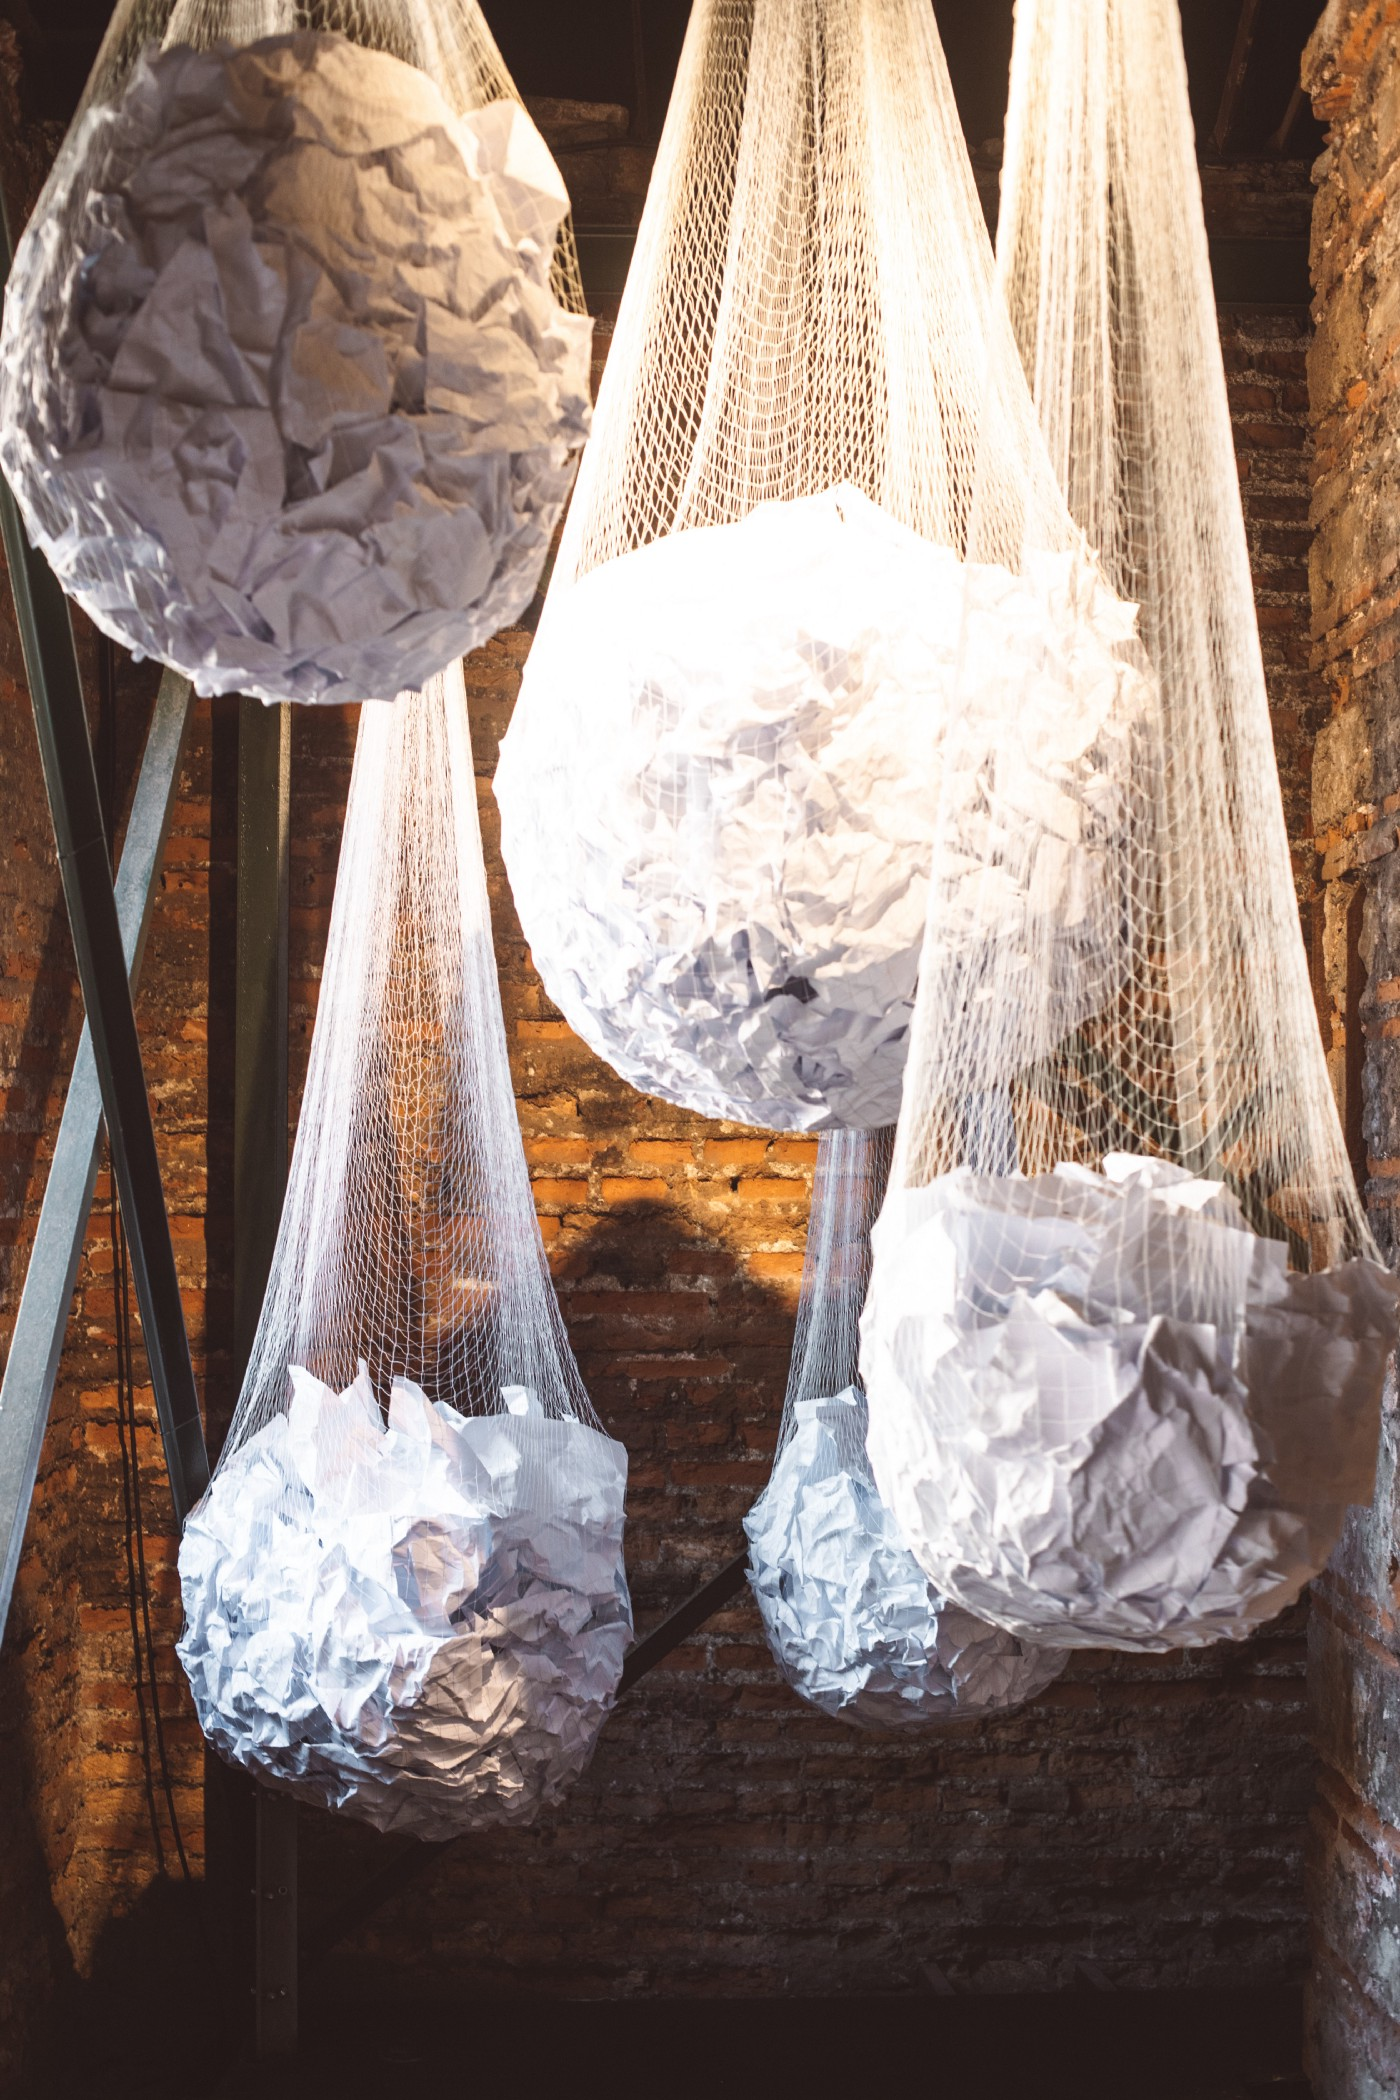 Rope bags of crumpled up white paper hanging from the ceiling. Background is industrial, yellowish brown brick wall.